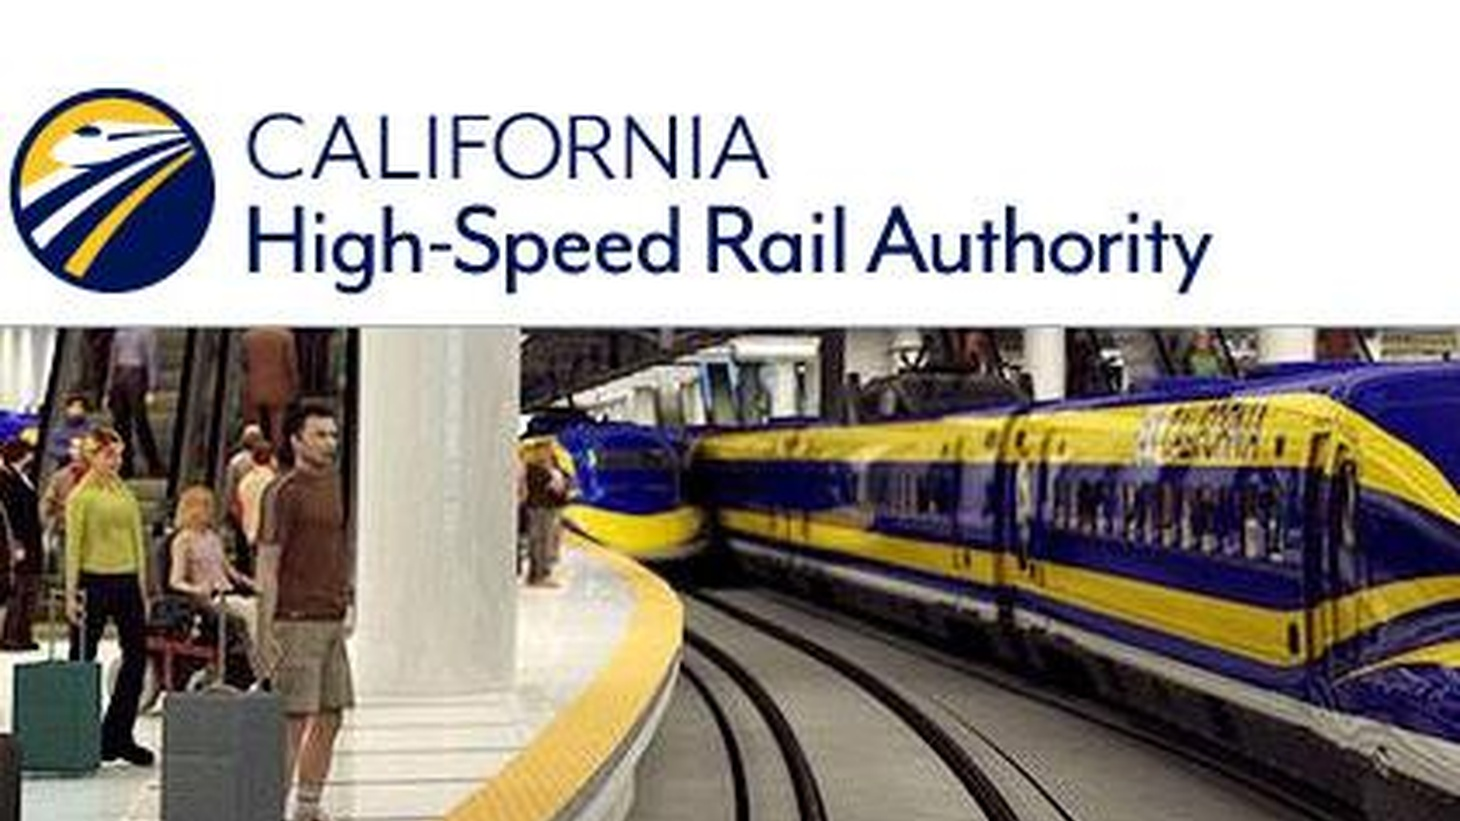 California voters have approved high-speed rail, and the first leg of a new system will spend $5.5 billion to go from...Shafter to Madera? We talk to the Vice Chair of the High Speed Rail Authority and a skeptical legislator.  Also, from a chilly summer to a fall heat wave to the wettest December on record, it turns out that Easterners are wrong after all. Los Angeles does have weather. On our rebroadcast of To the Point, the New START treaty and the politics of national security.